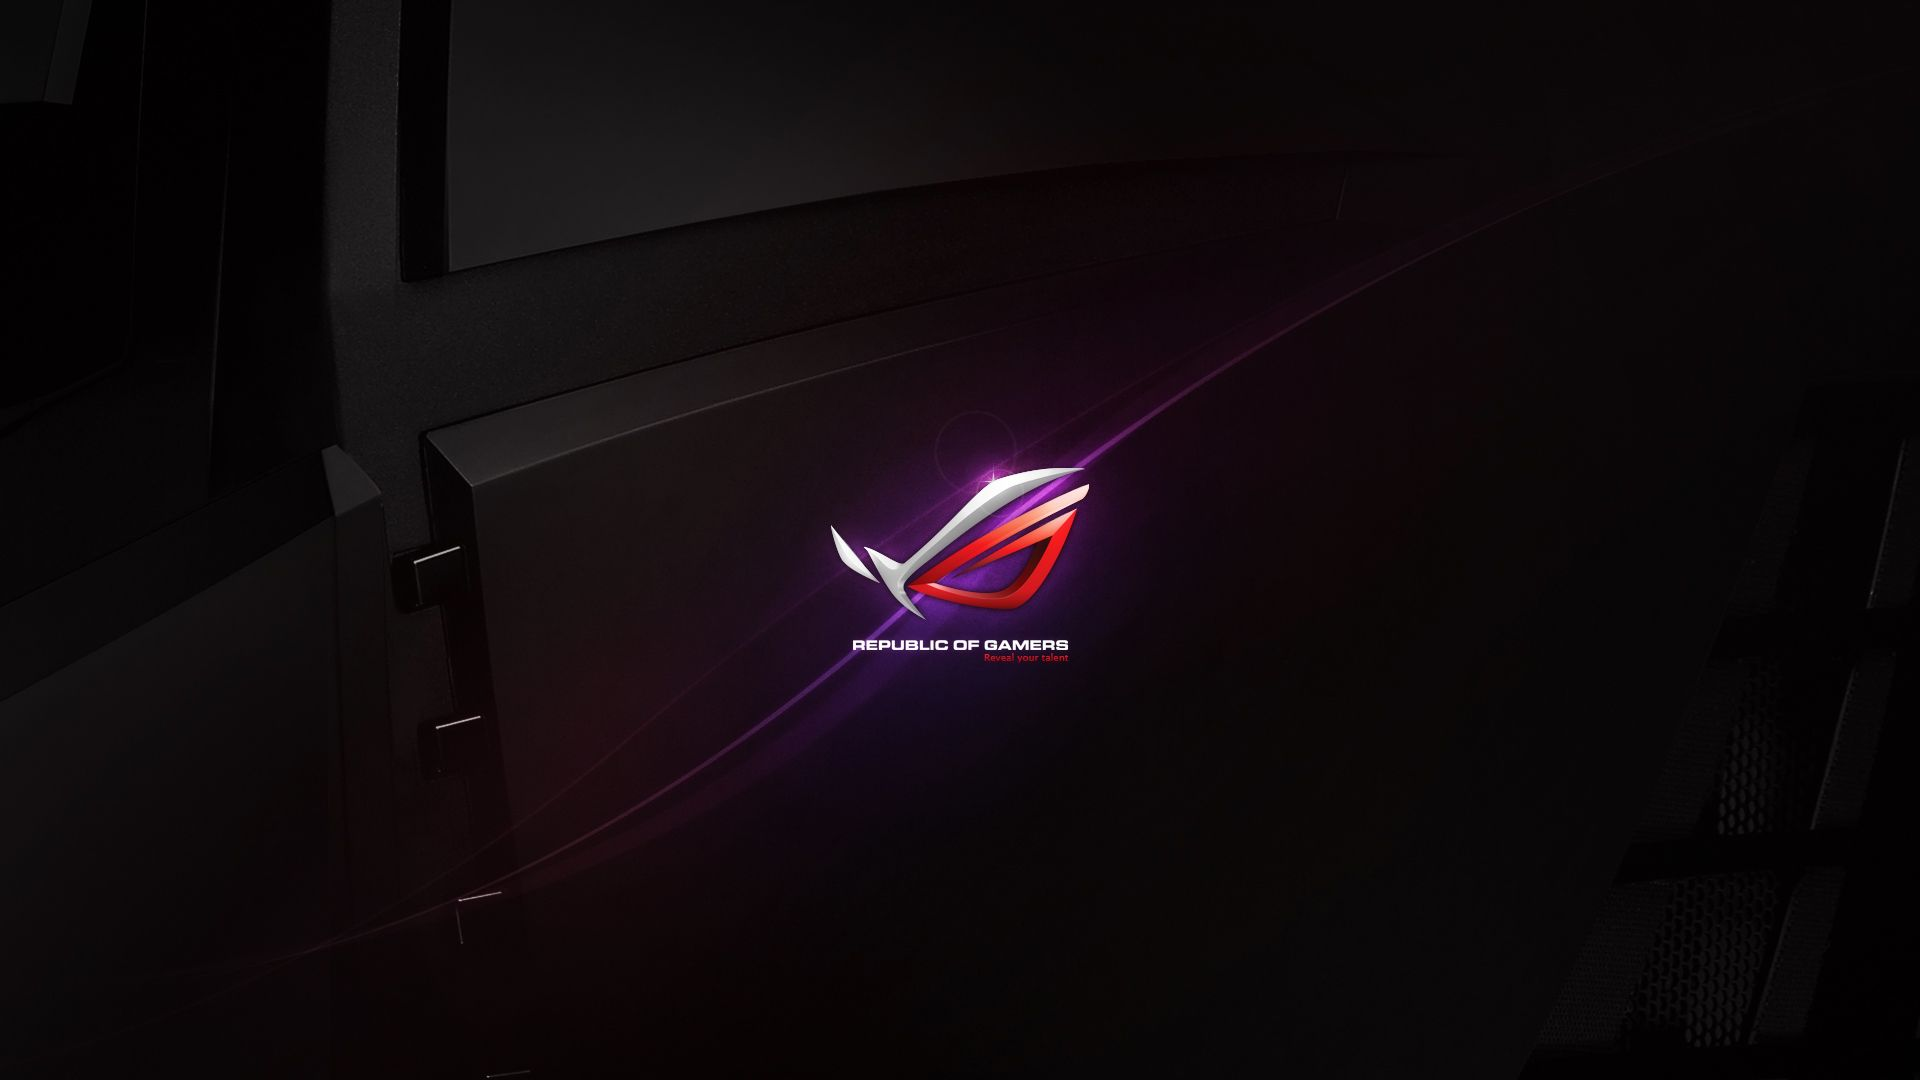 Asus Rog Free Wallpapers Mine Pinterest Wallpaper Widescreen